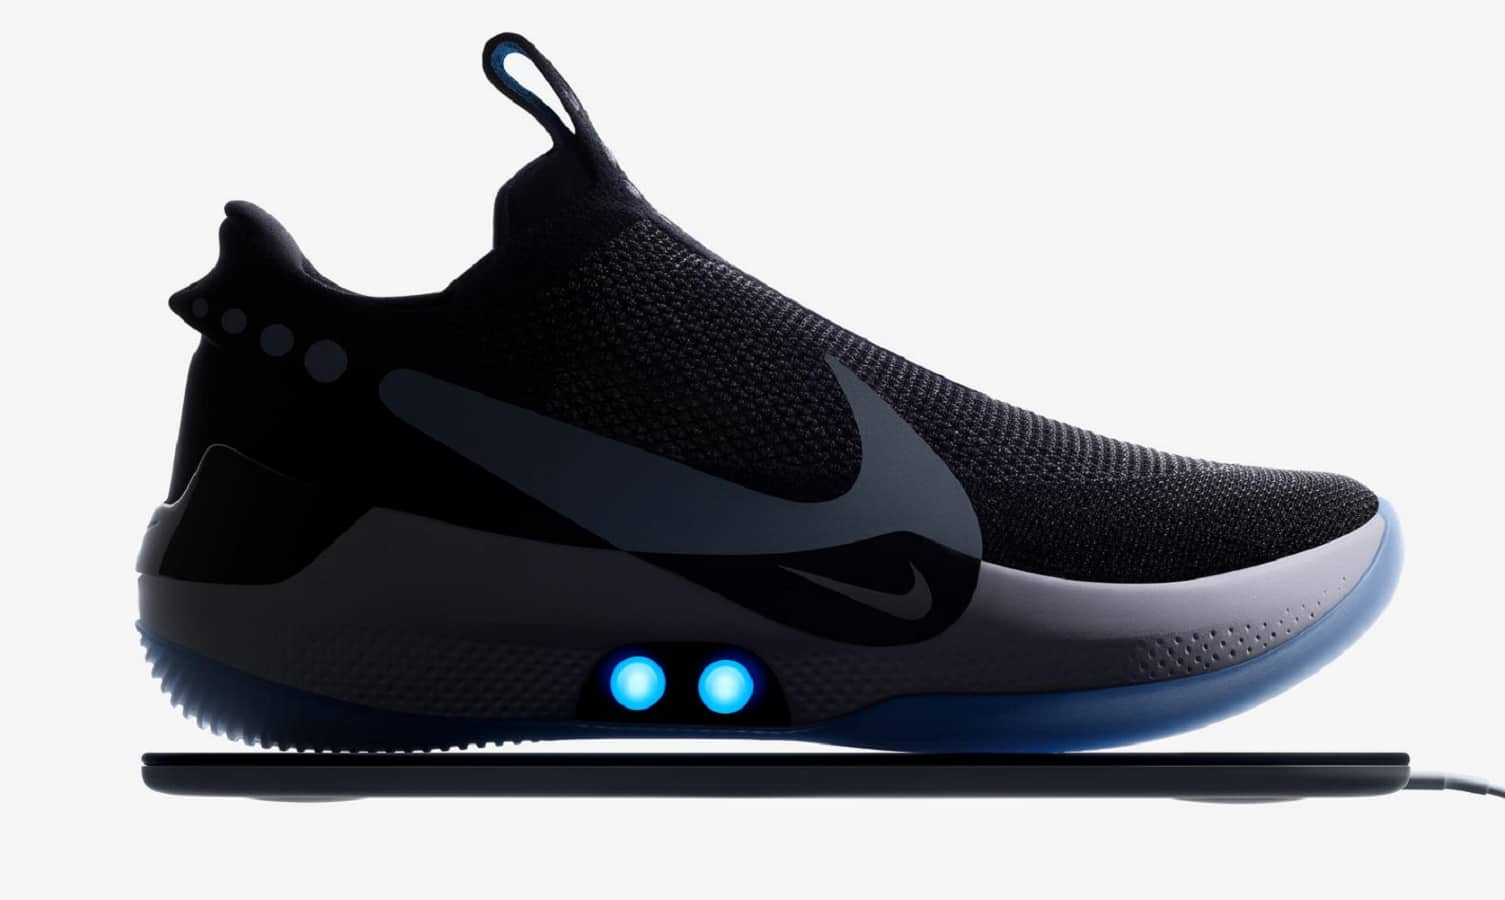 nike adapt bb self-lacing shoe